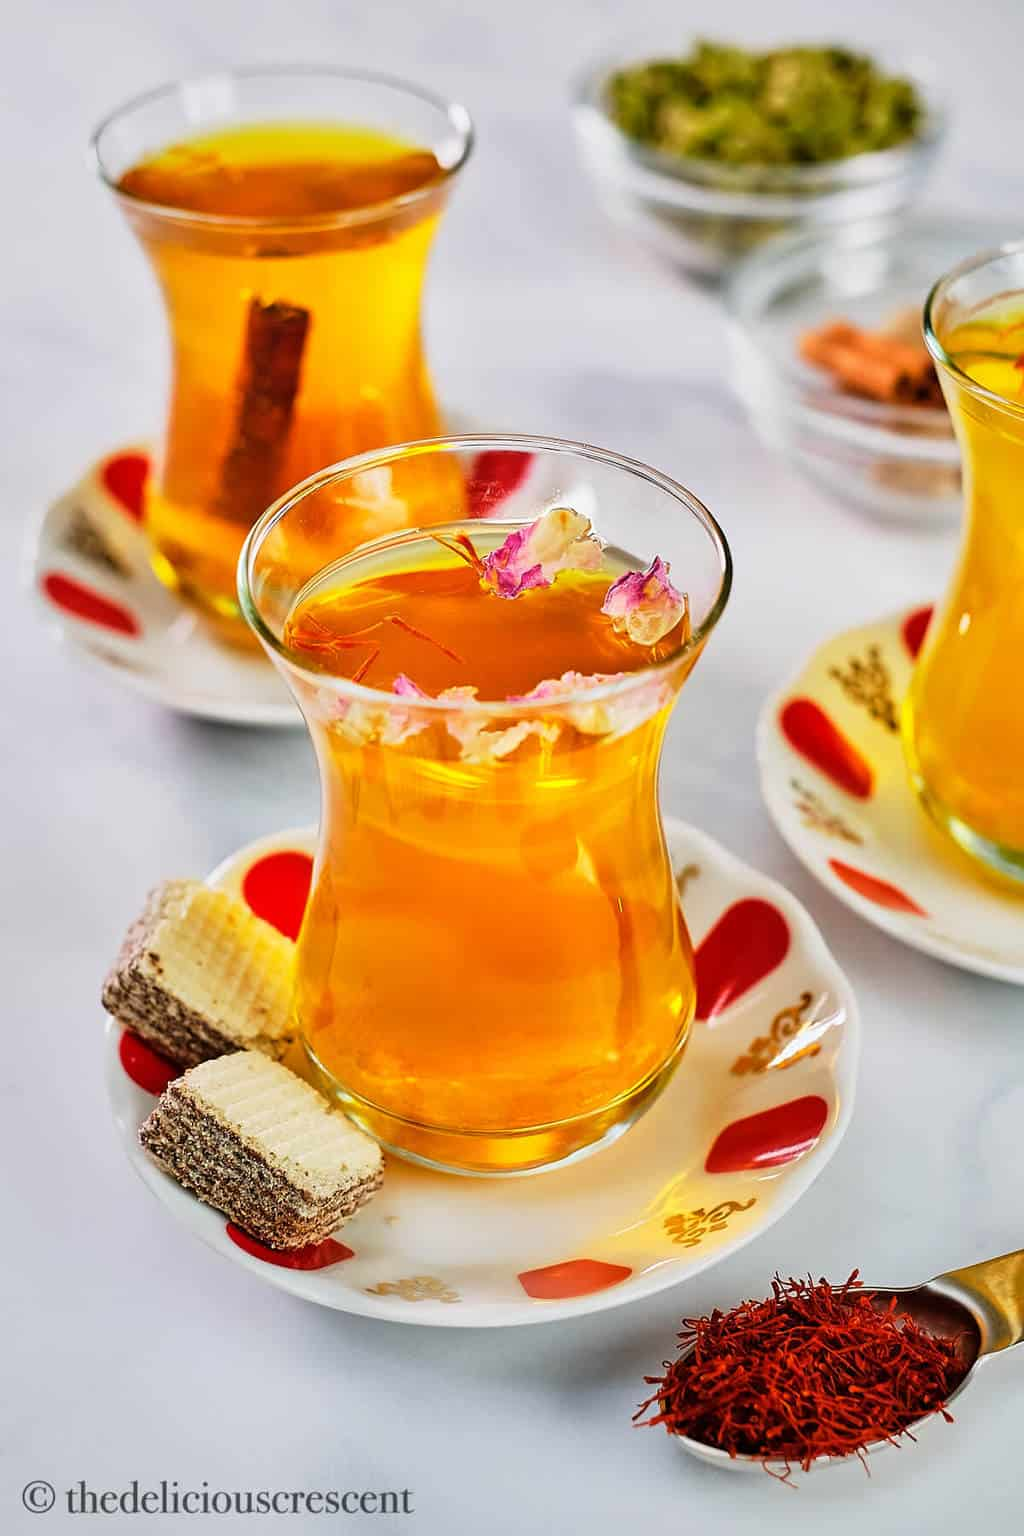 Saffron tea served in glass cups with rose petals, cinnamon and mint.